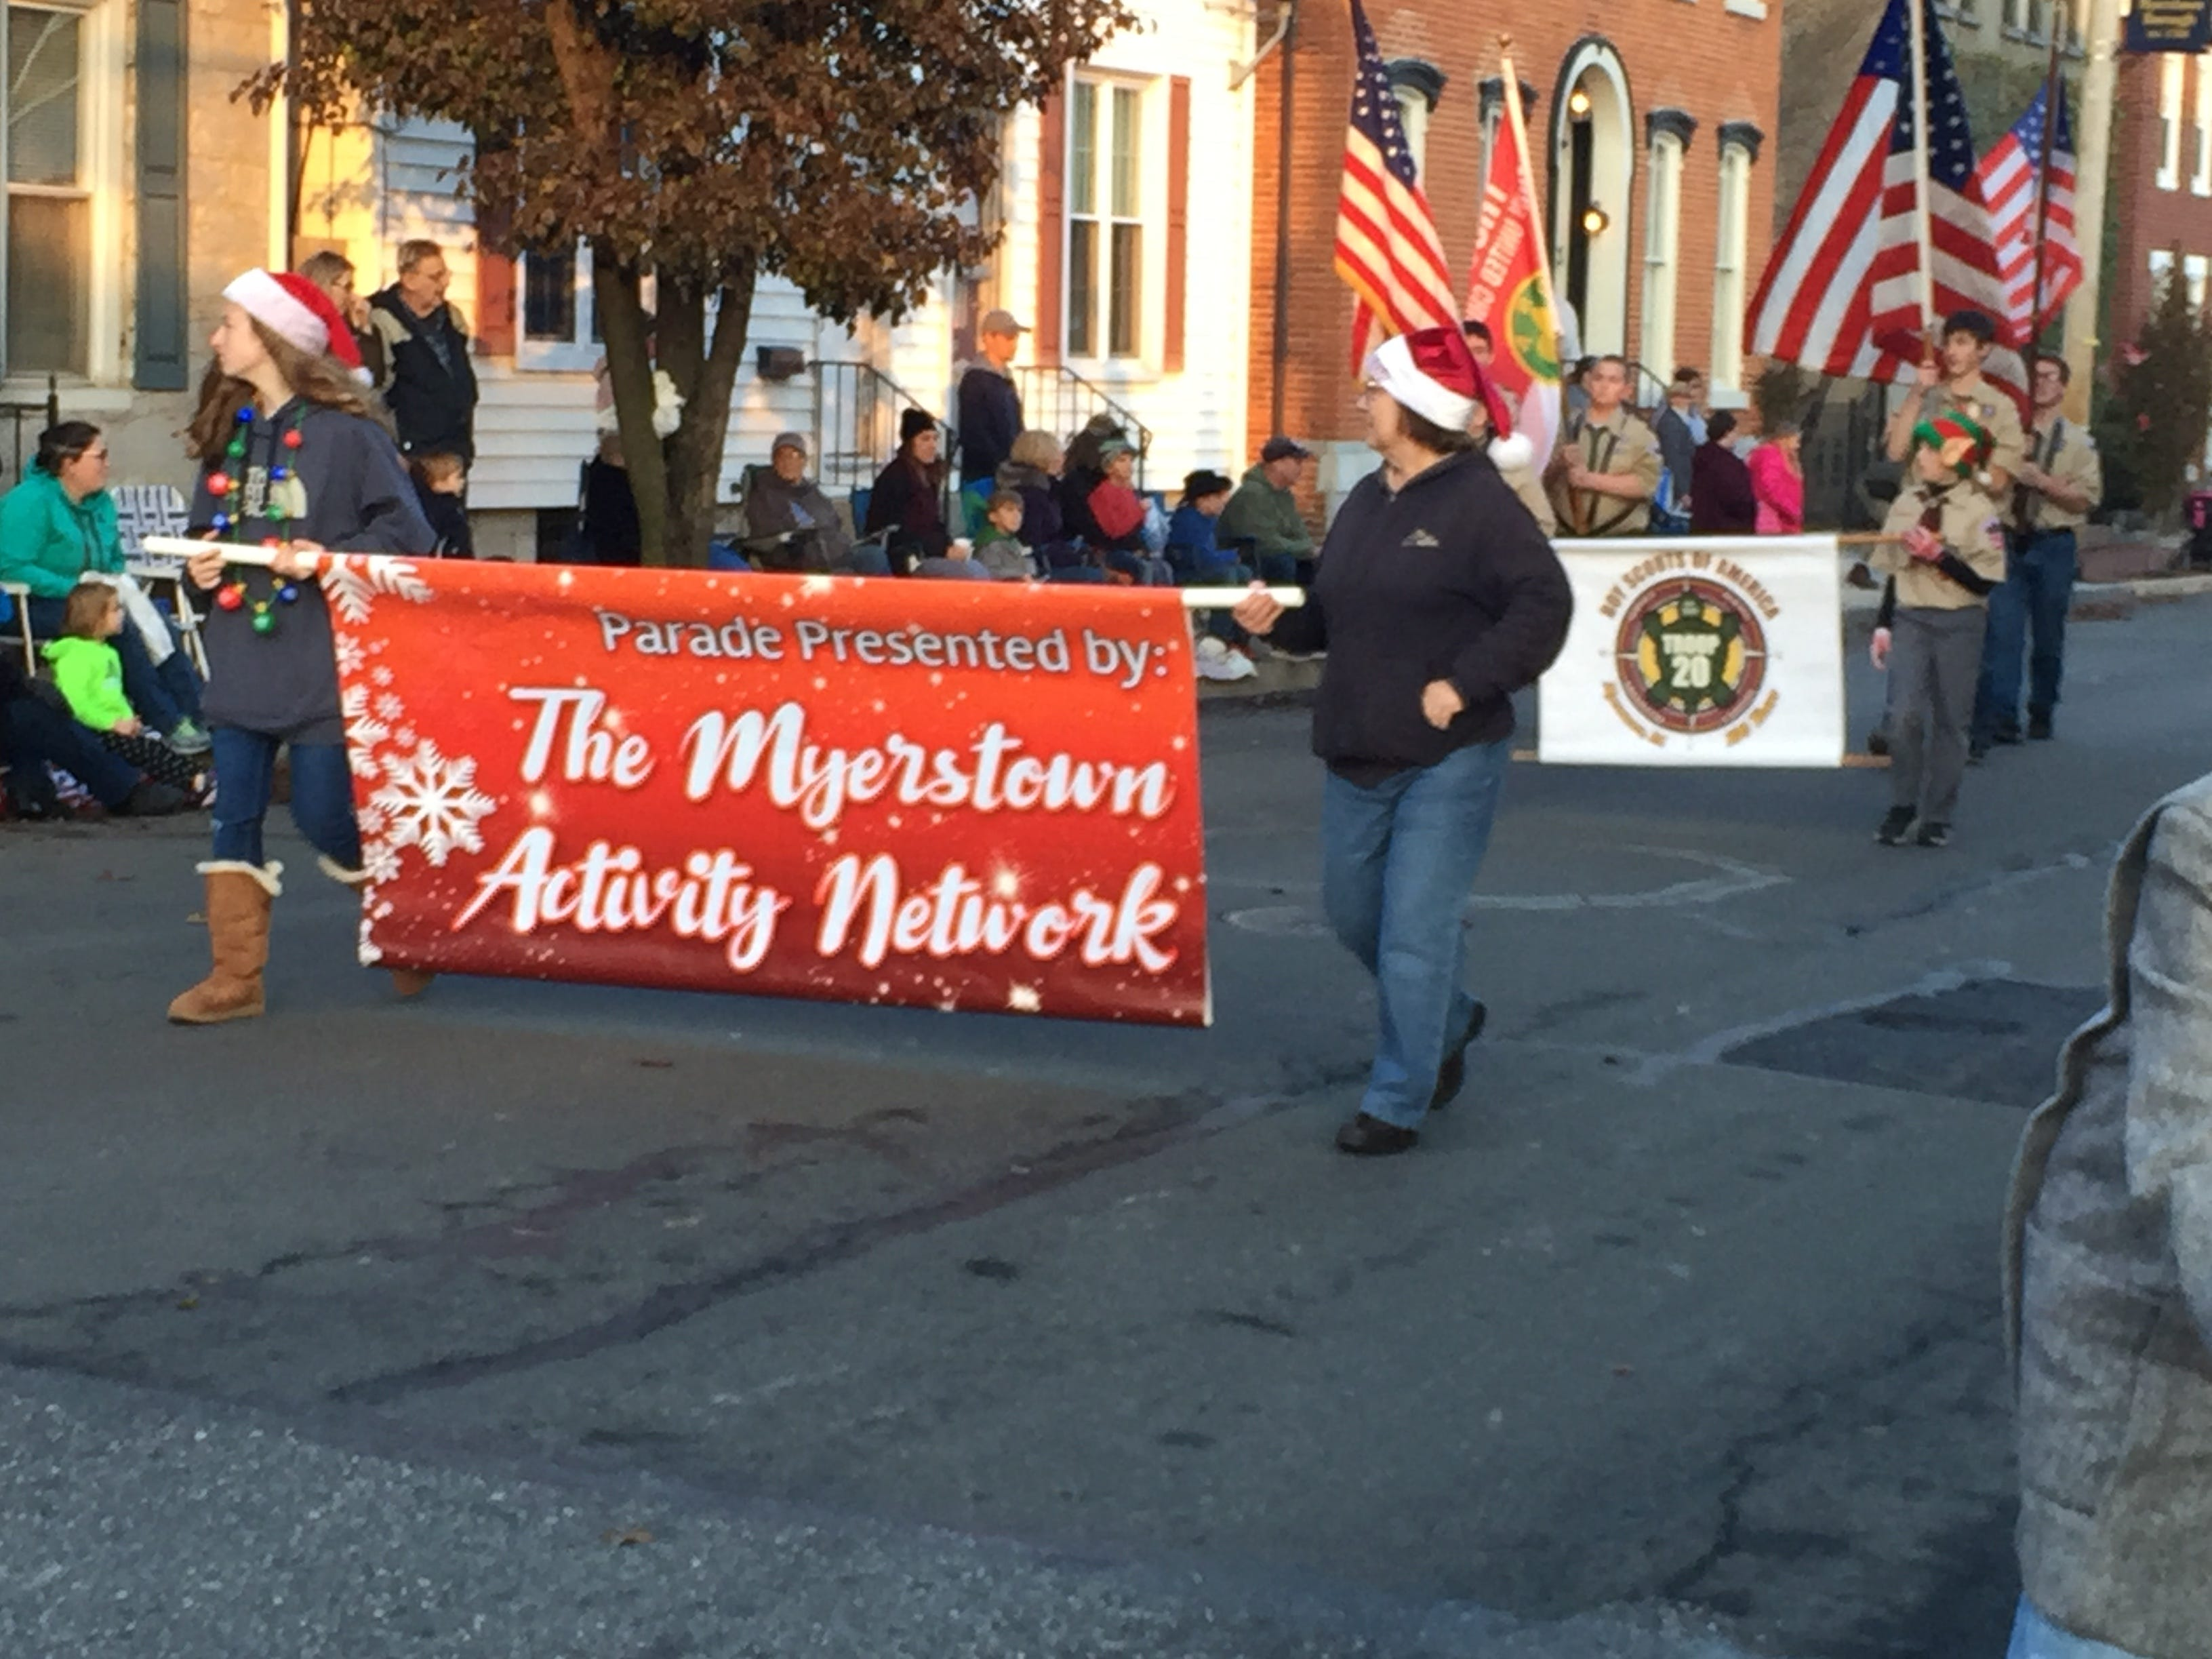 The 2018 Myerstown Holiday  Parade was held Sunday, Nov. 25, 2018 in the jam-packed streets of Myerstown.